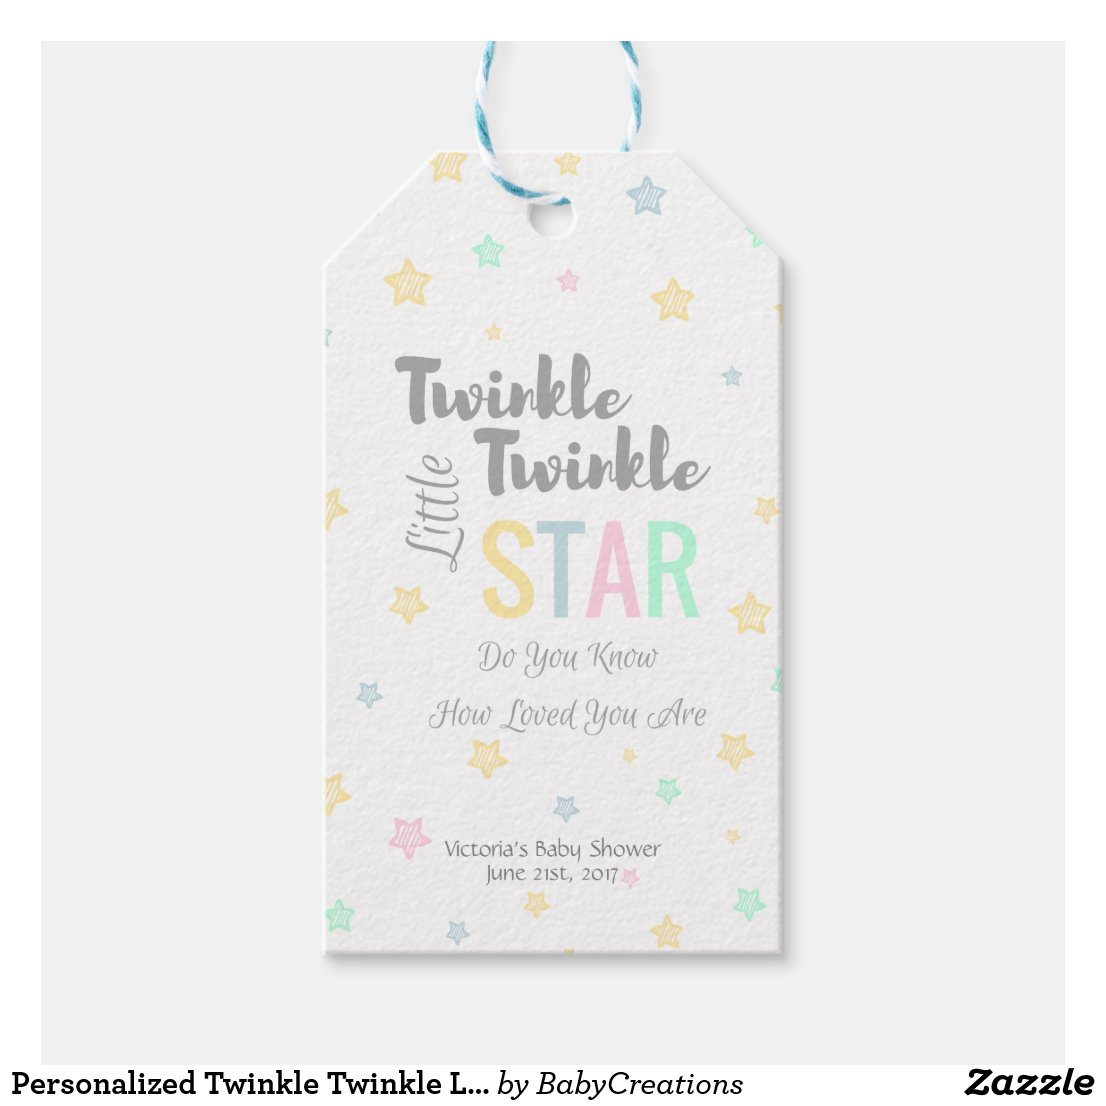 Personaized Twinkle Twinkle Little Star - Tags